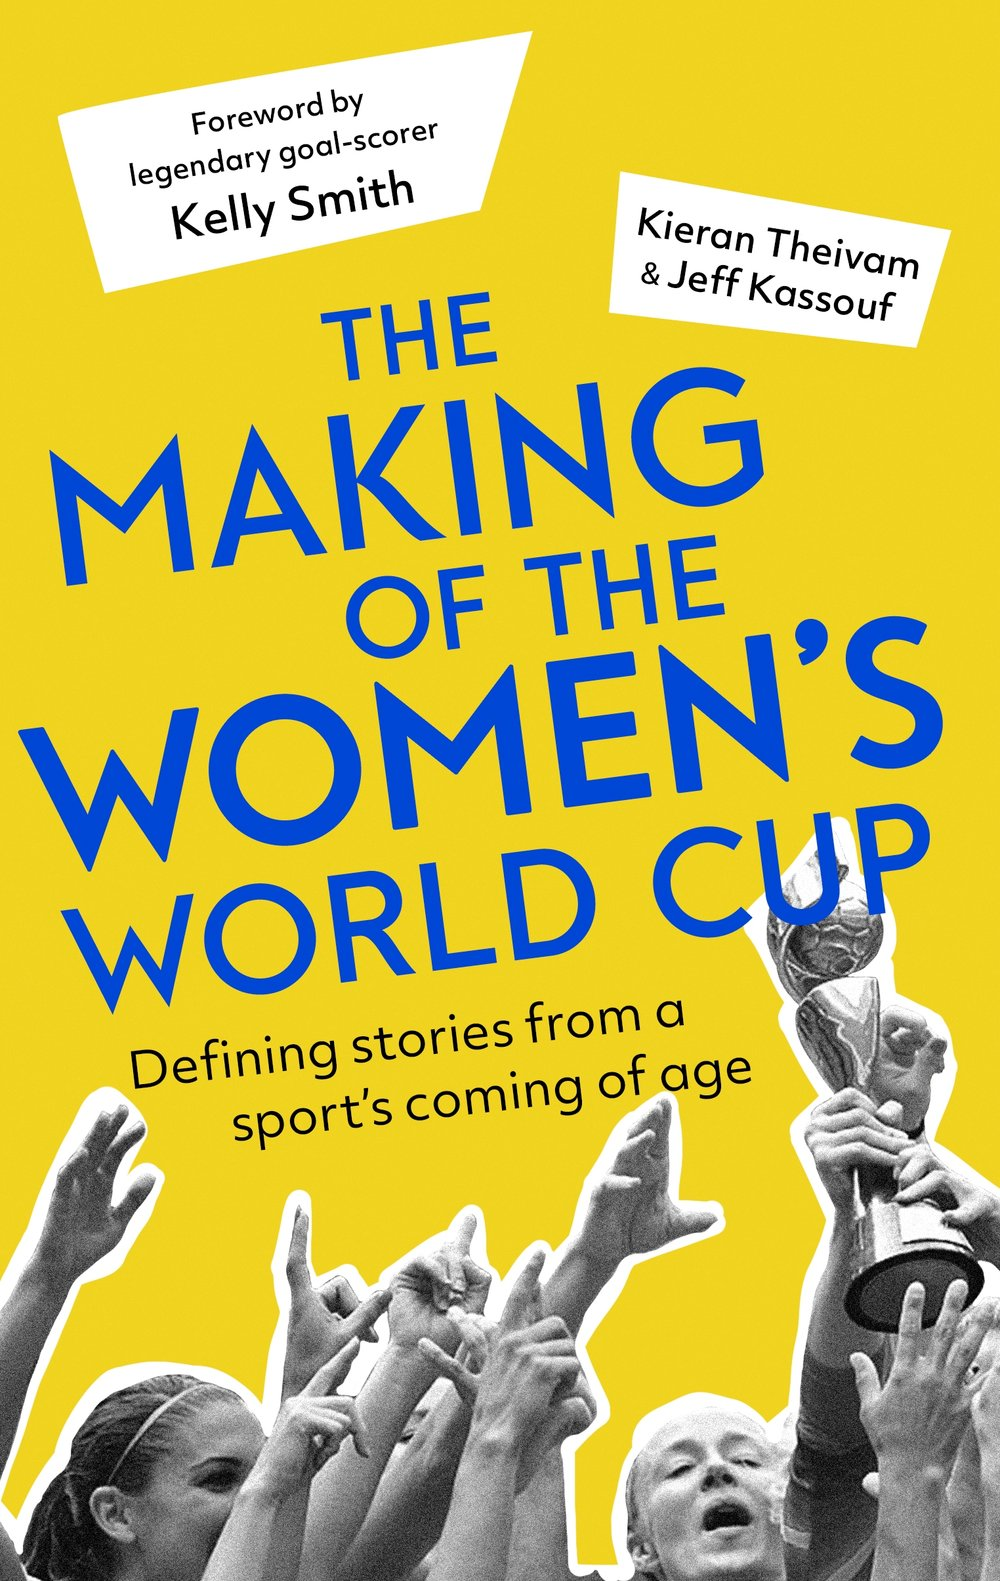 The Making of the Women's World Cup.jpg